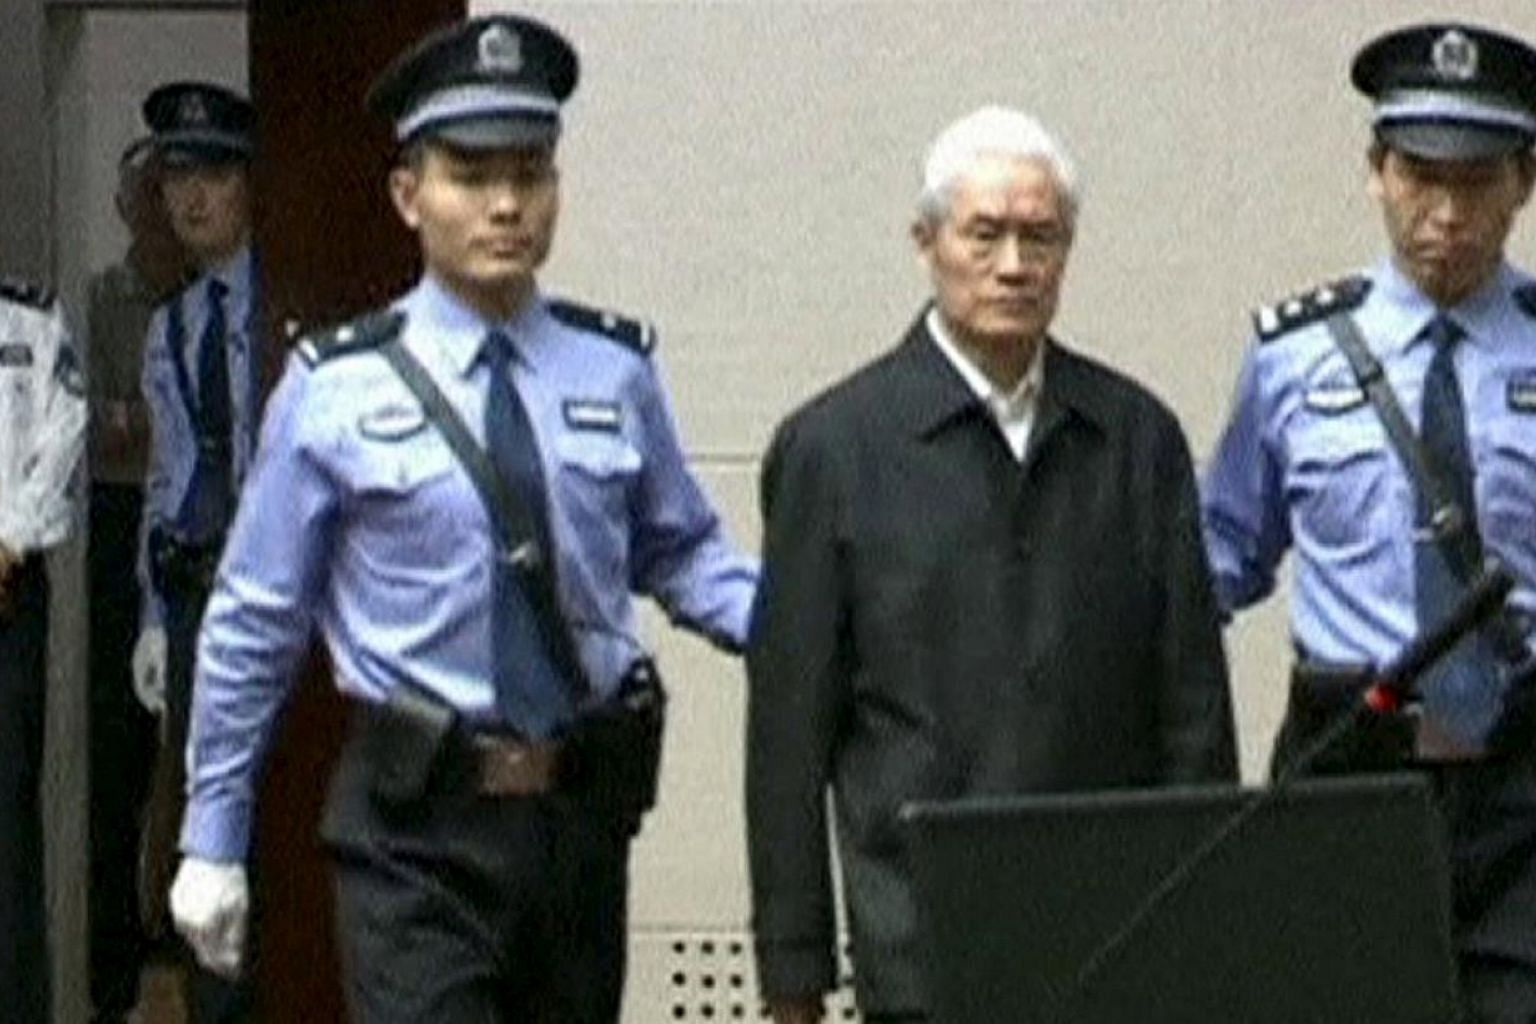 China's former domestic security chief Zhou Yongkang being escorted into court for his sentencing in Tianjin, China, in this still image taken from video provided by China Central Television and shot on June 11, 2015. -- PHOTO: REUTERS